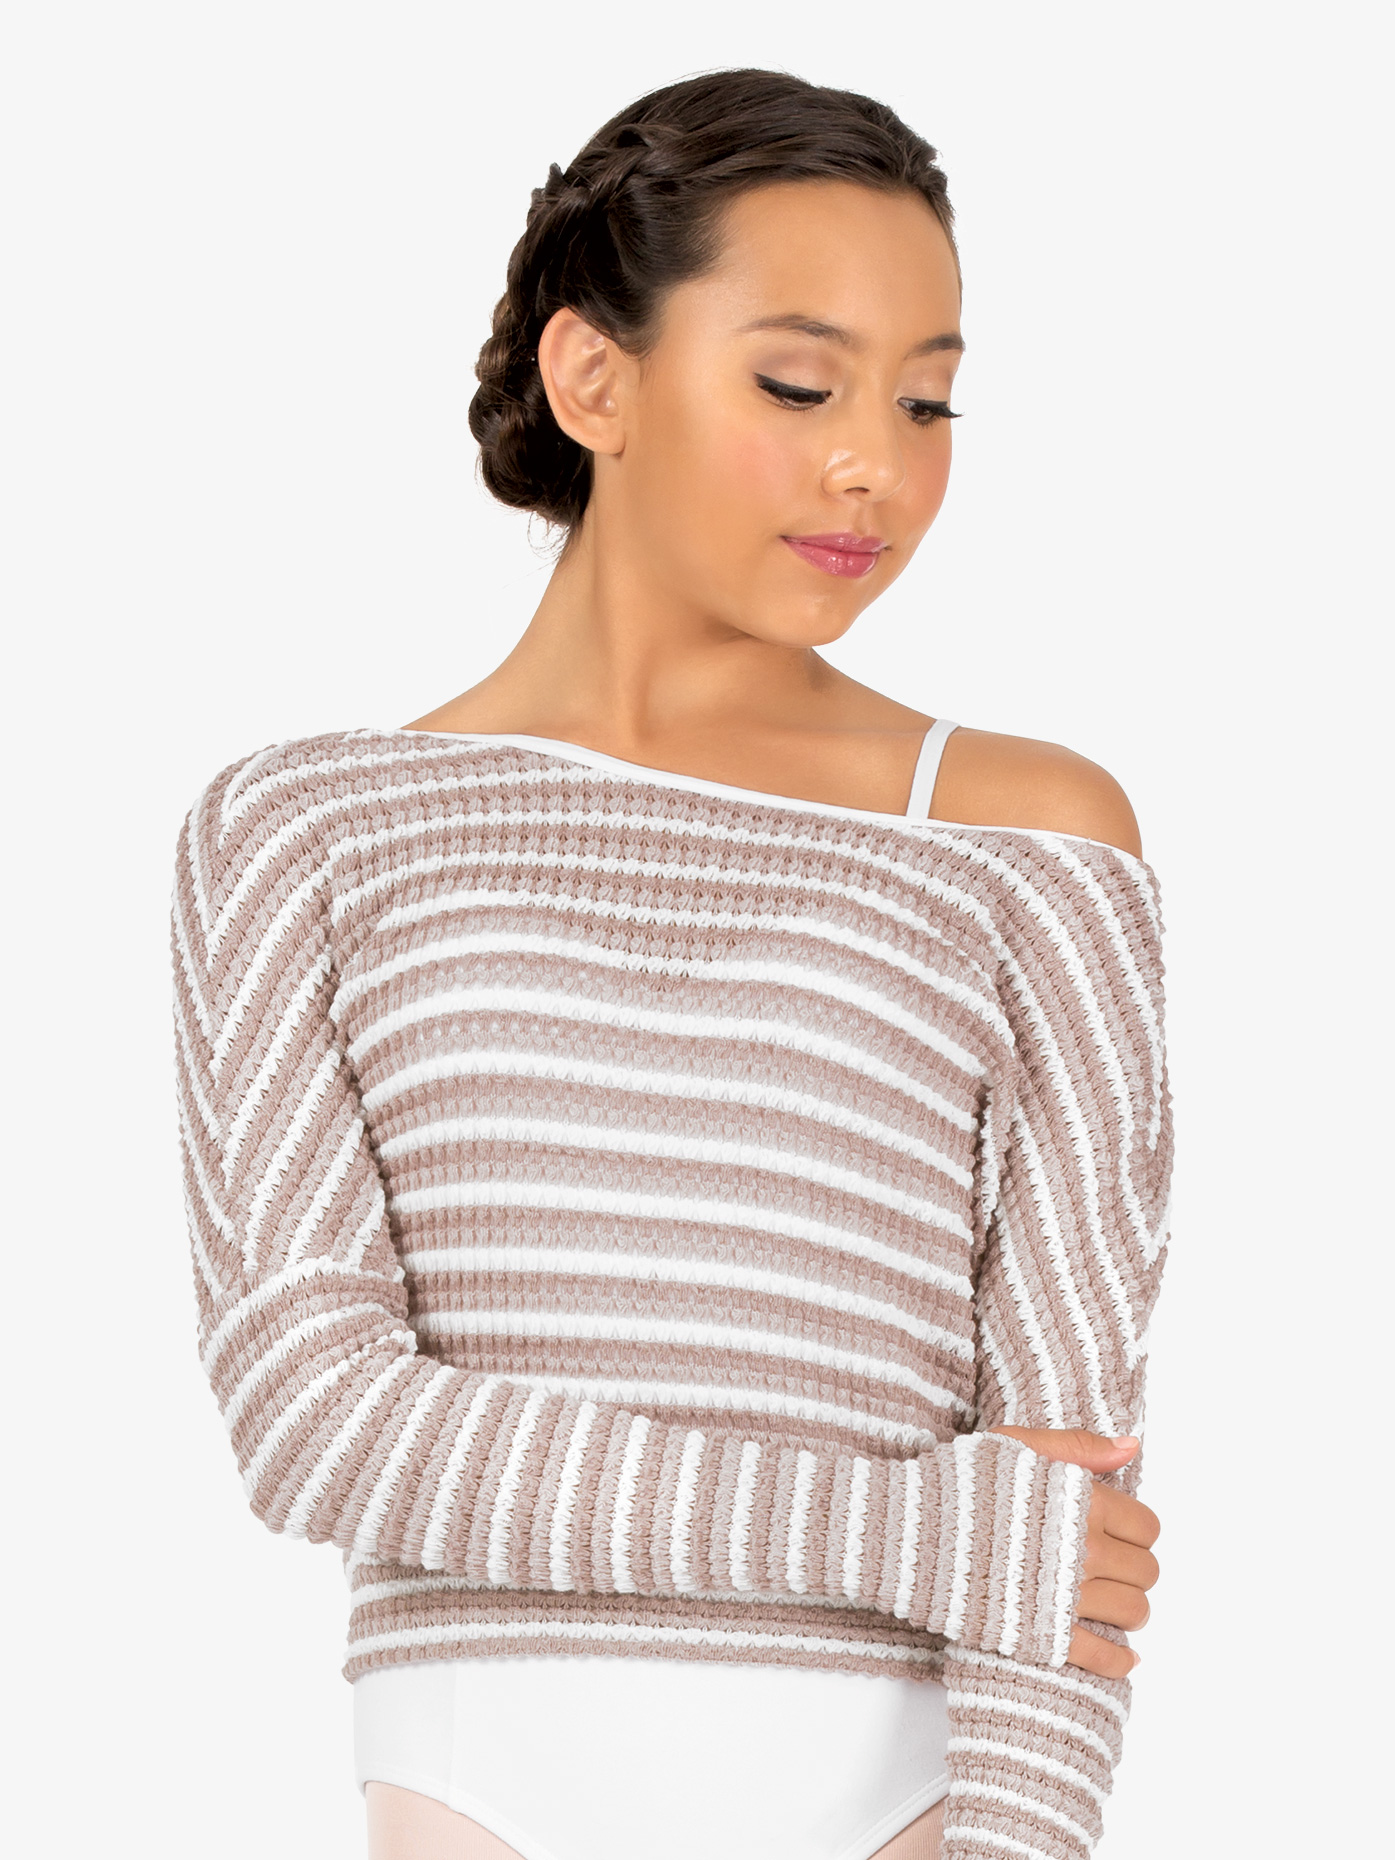 Natalie Womens Striped Knit Warm Up Long Sleeve Sweater N9101